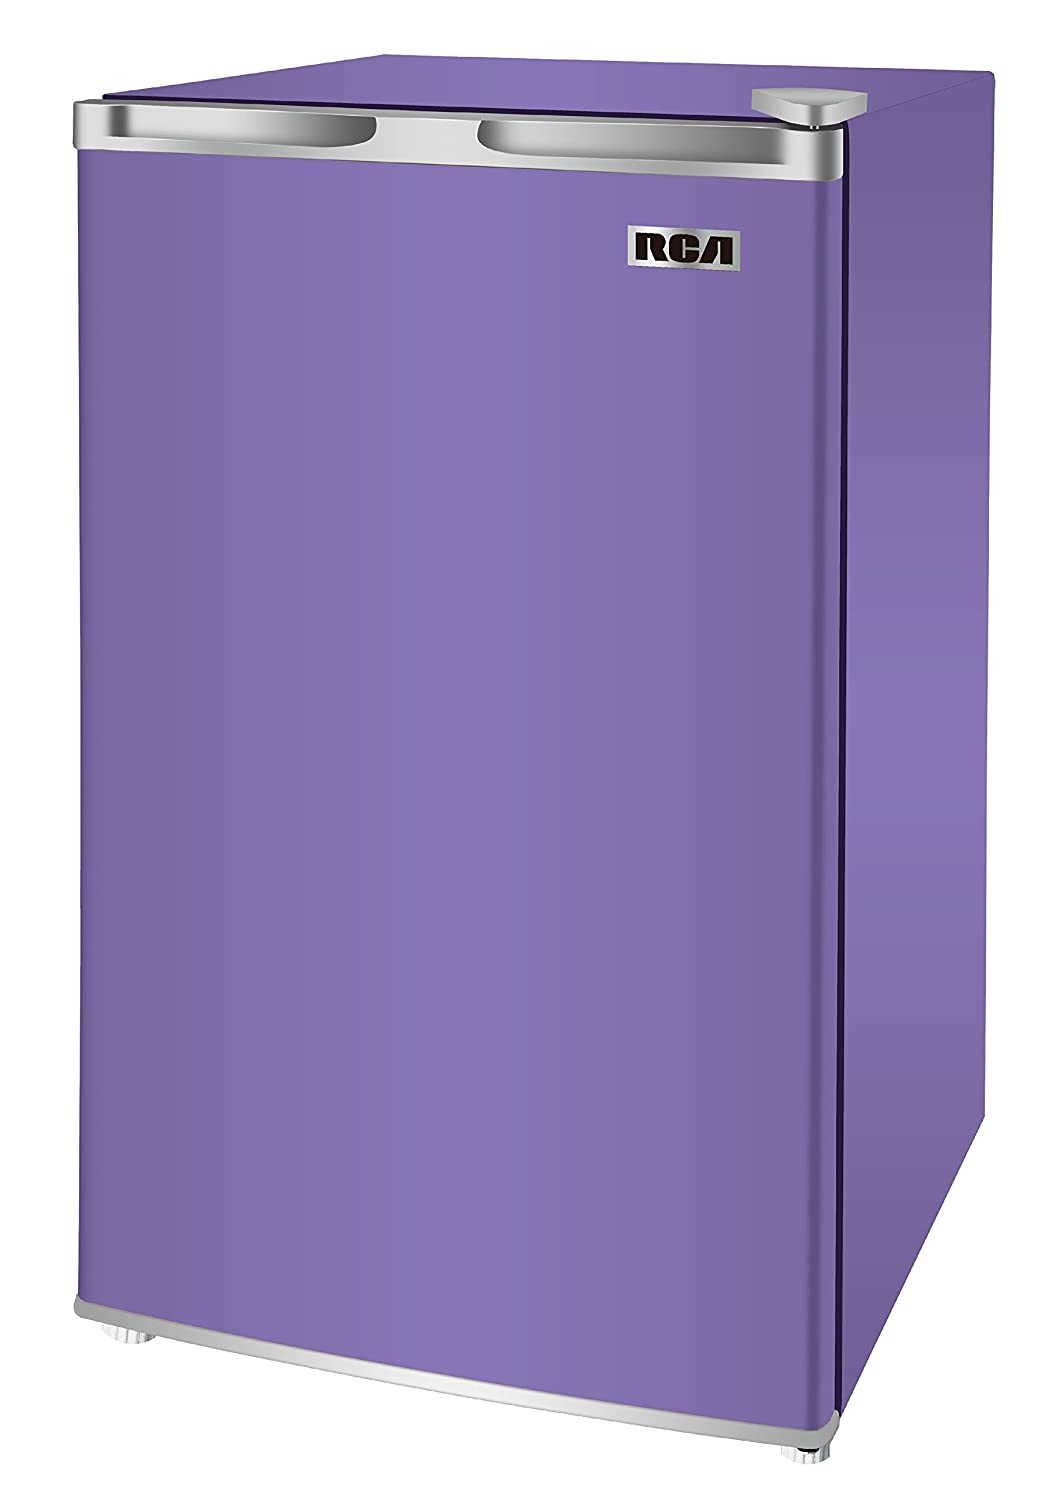 RCA RFR321-FR320/8 IGLOO Mini Refrigerator, 3.2 Cu Ft Fridge, Purple